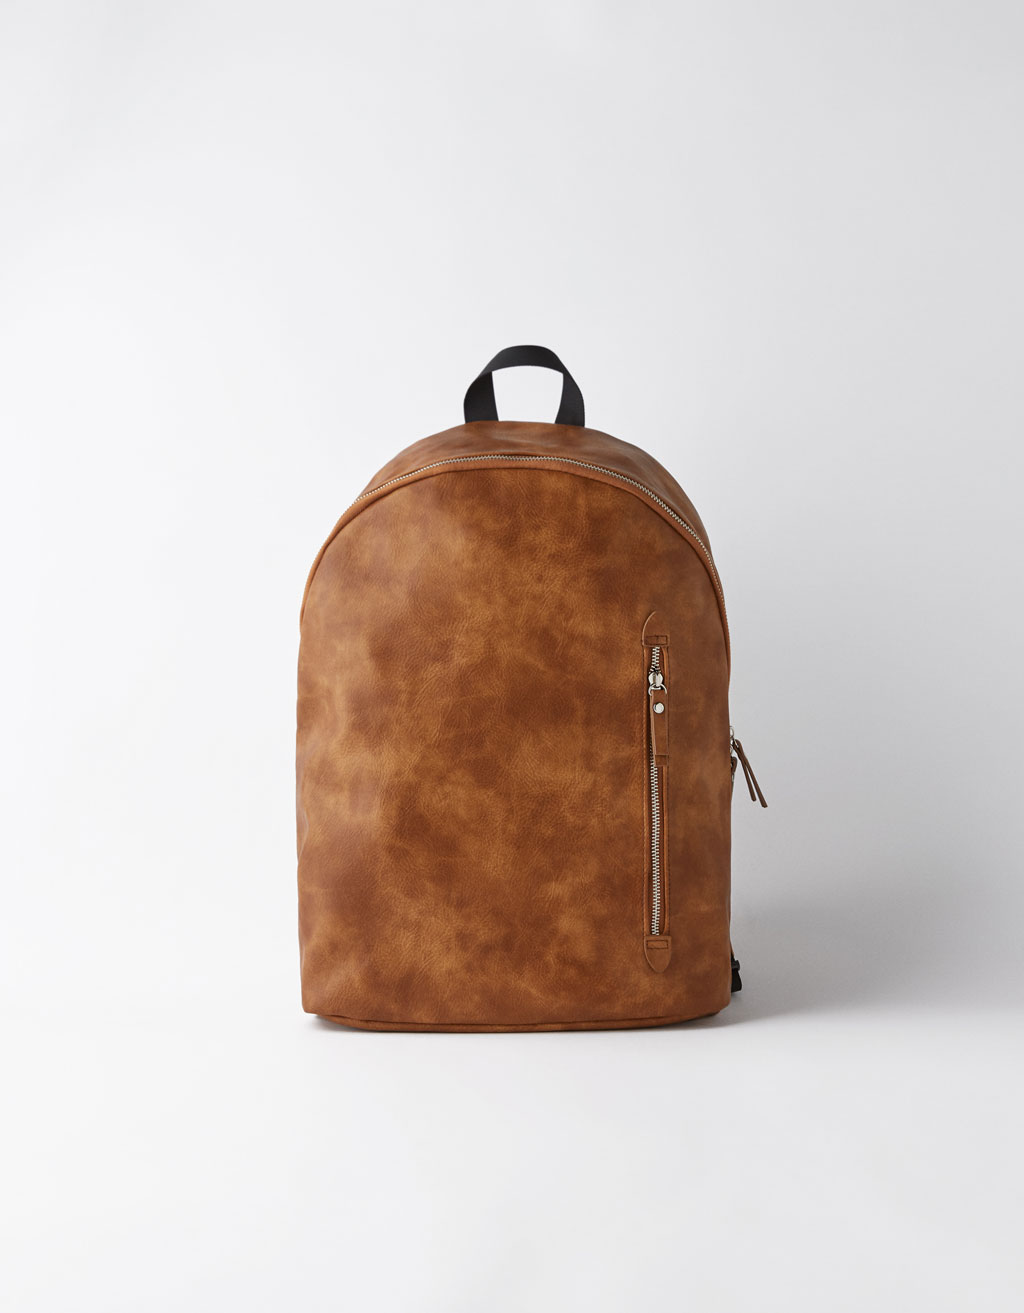 Backpack with side pocket